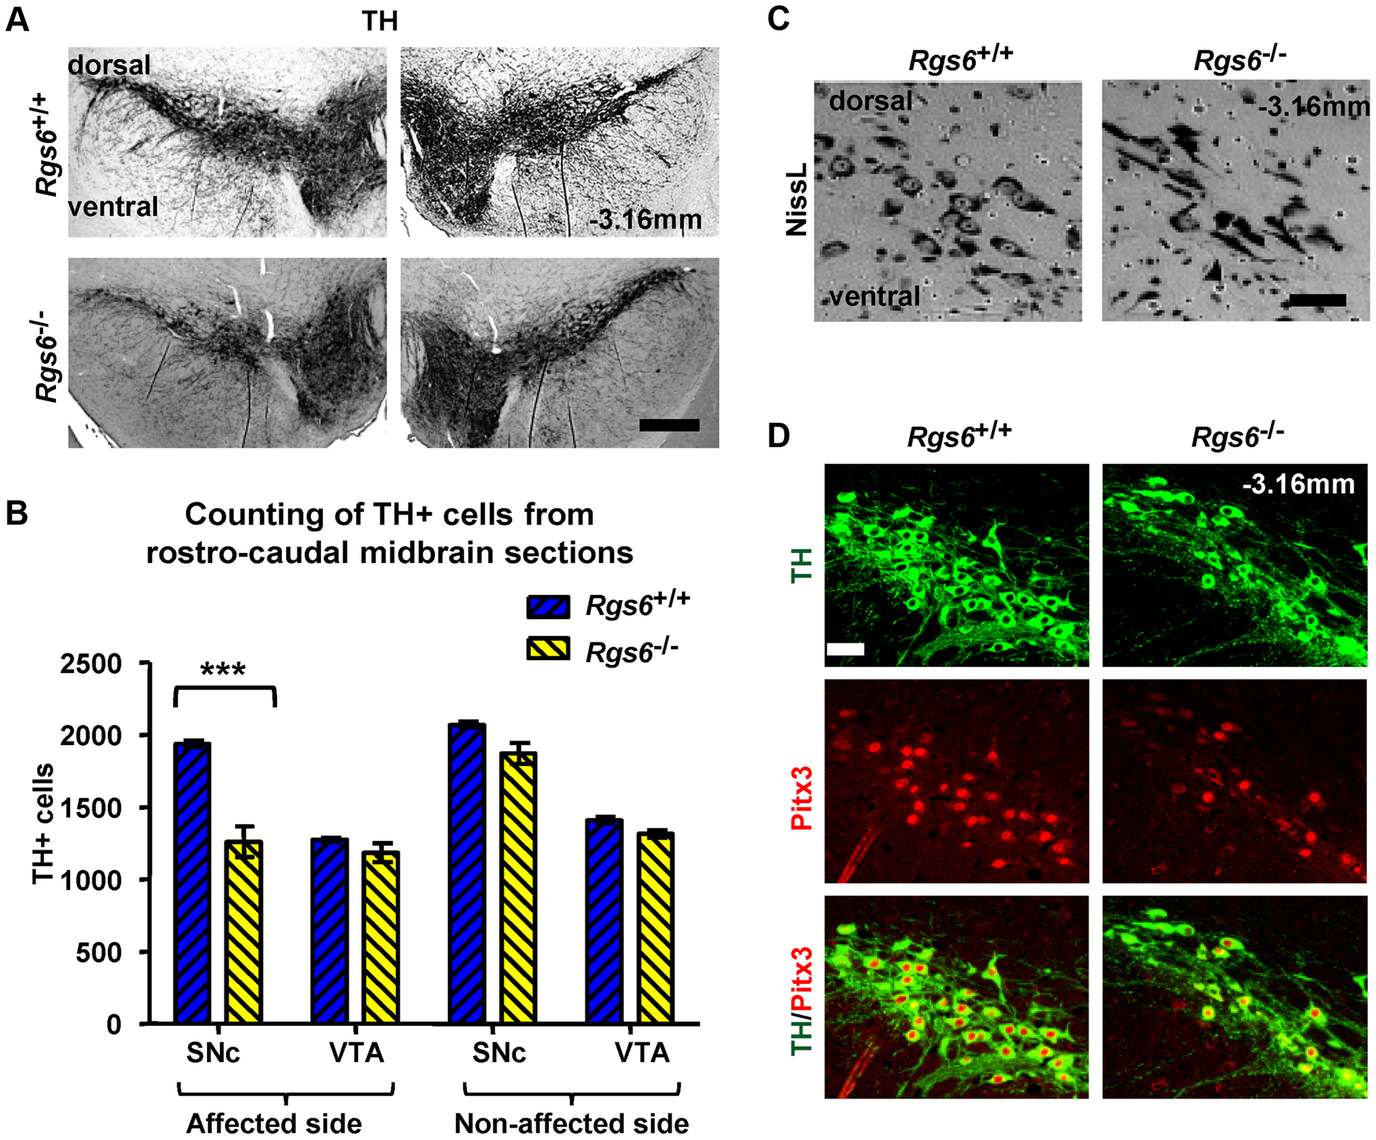 Unilateral loss of Pitx3-positive dopaminergic neurons in ventral SNc of <i>Rgs6</i><sup>−/−</sup> mice.